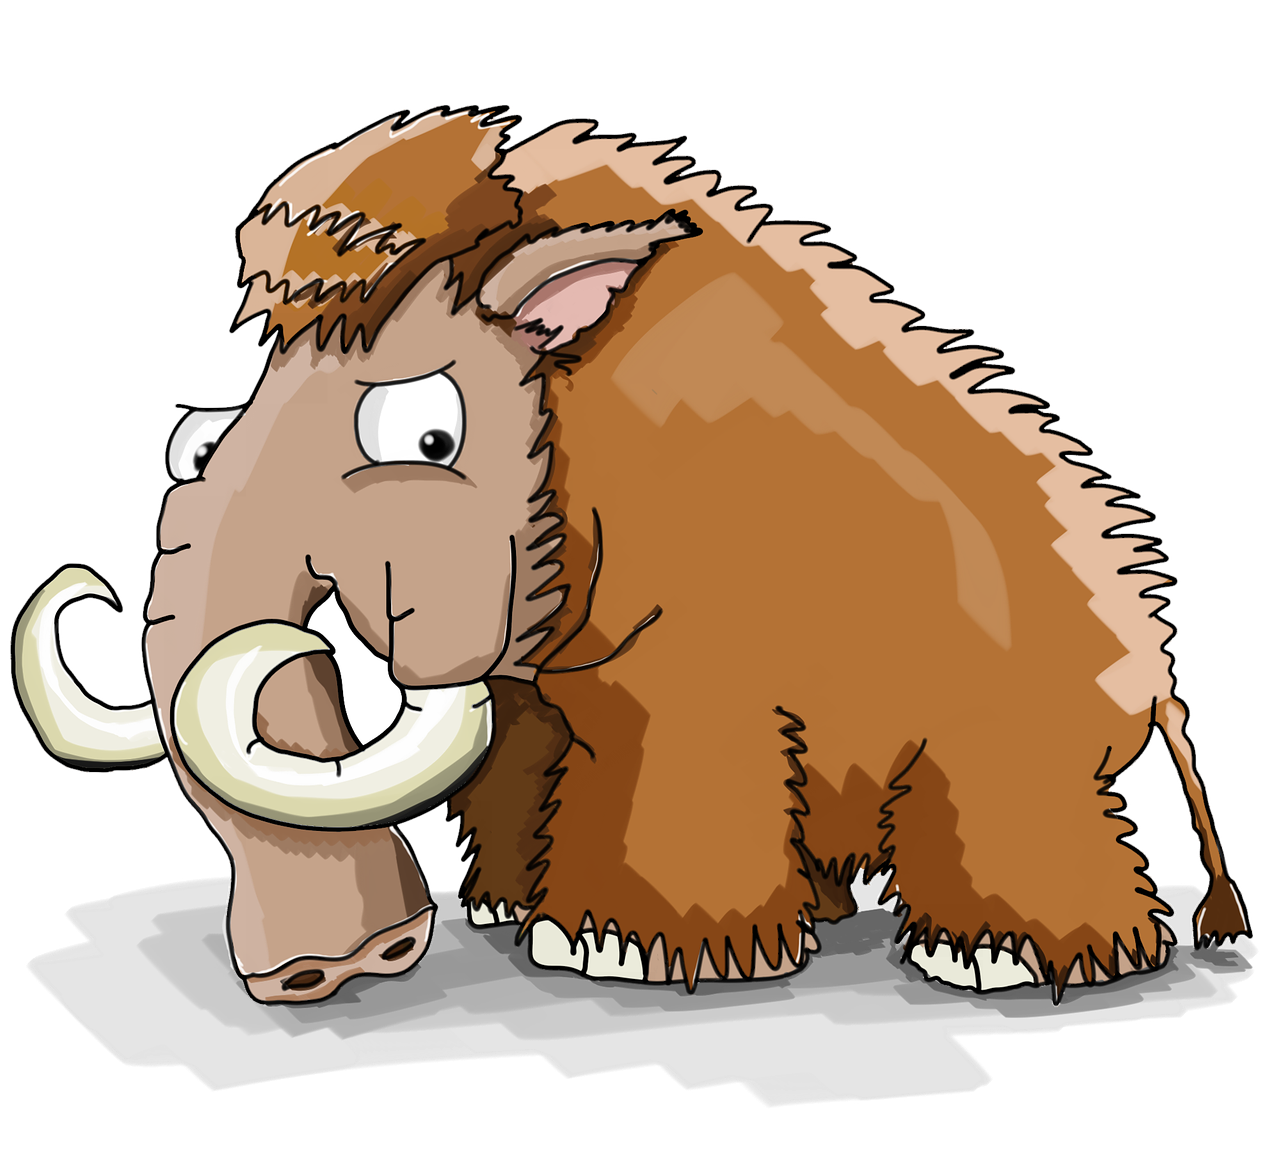 Mammoth Cool Cartoon Strongman  - creozavr / Pixabay